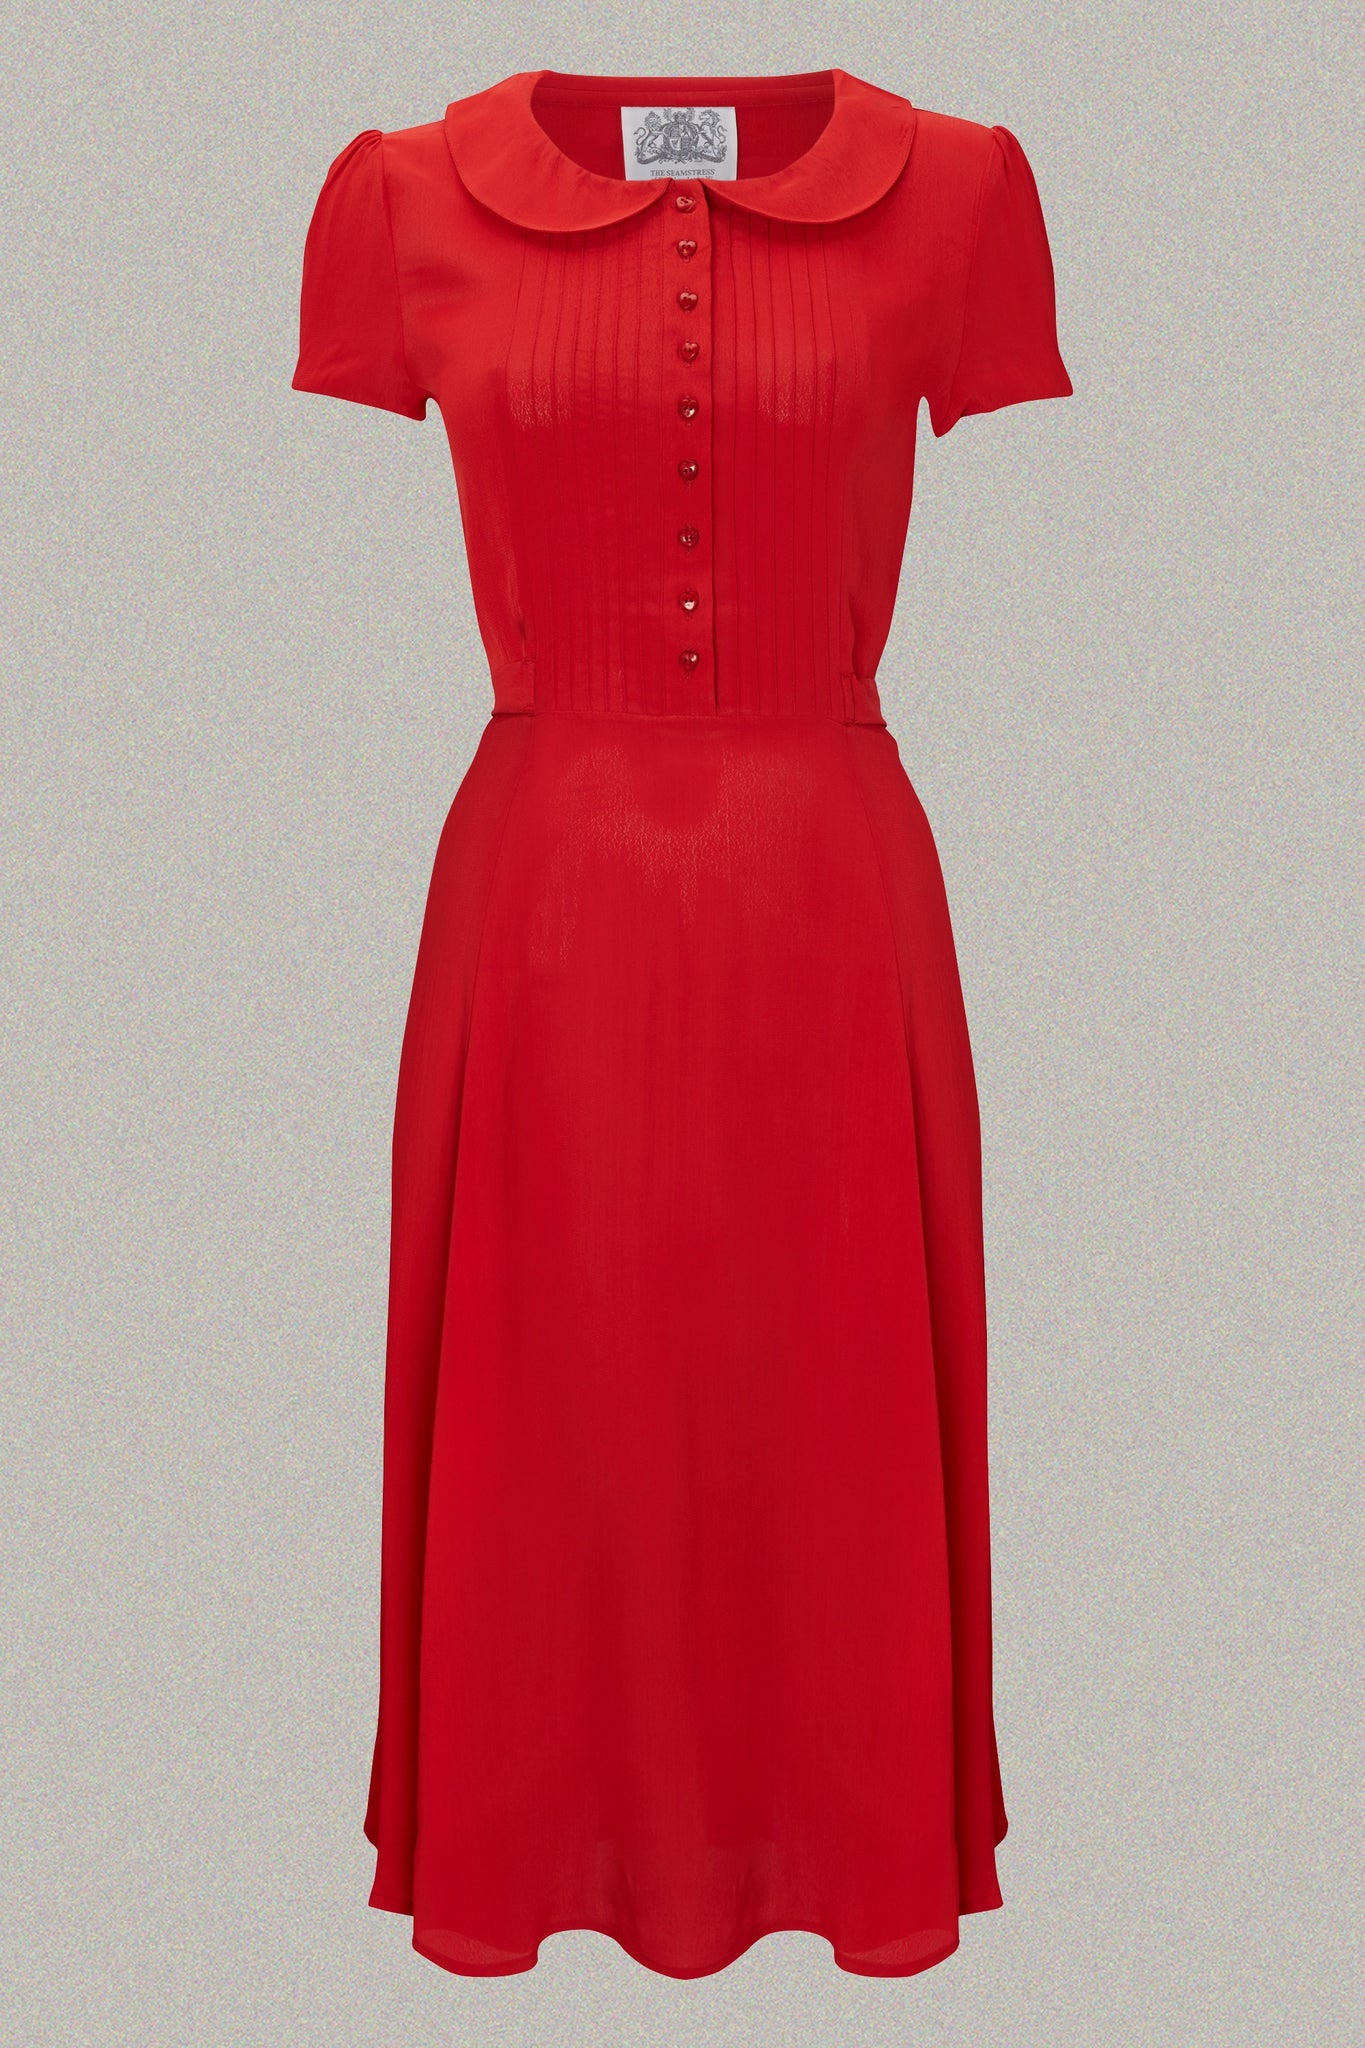 "The Seamstress Of Bloomsbury ""Dorothy"" Swing Dress in Pilliar Box Red, A Classic 1940s Inspired Vintage Style - RocknRomance Clothing"